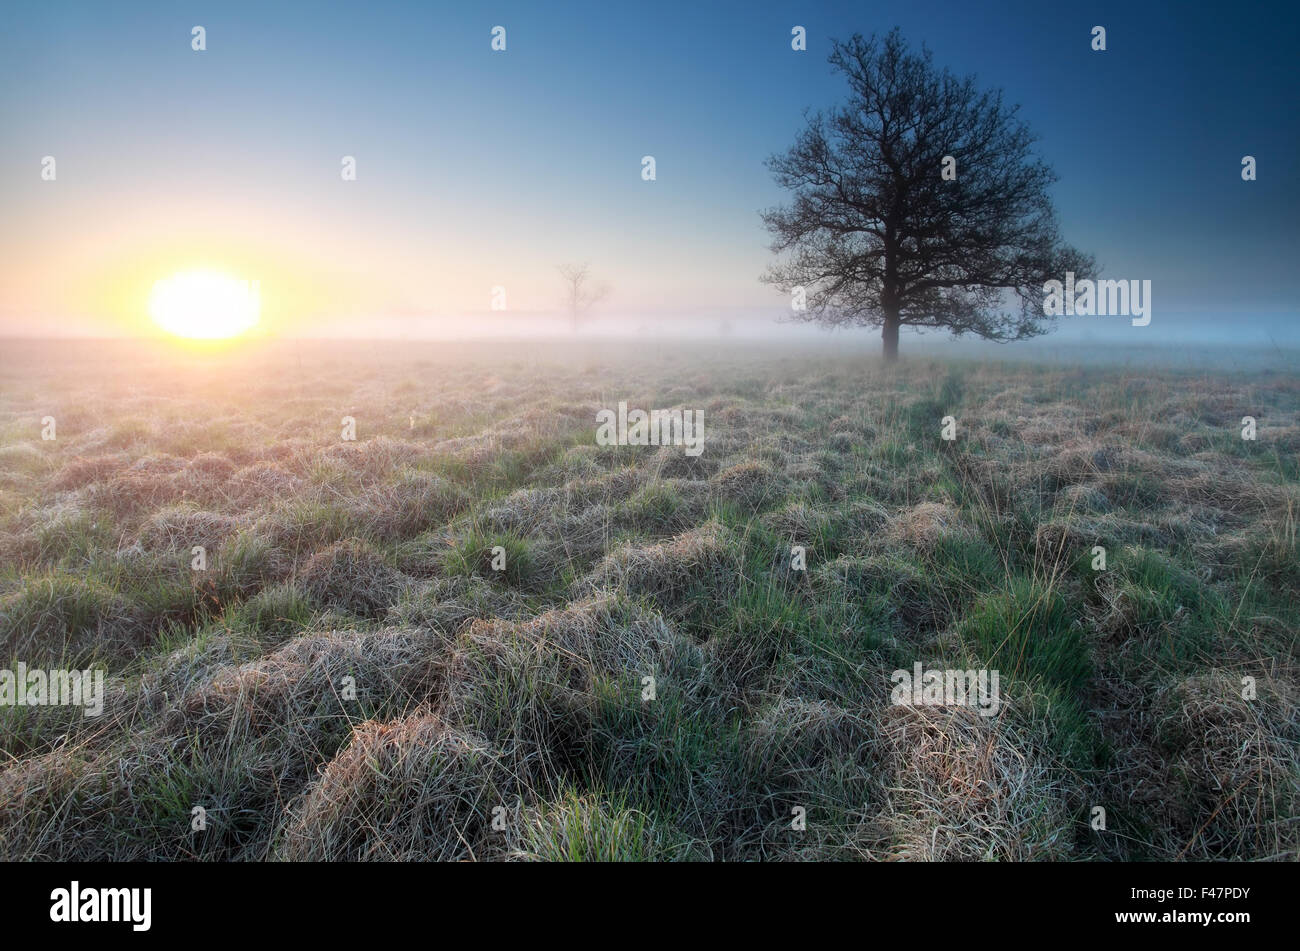 sunrise and little path to tree on marsh, Netherlands - Stock Image